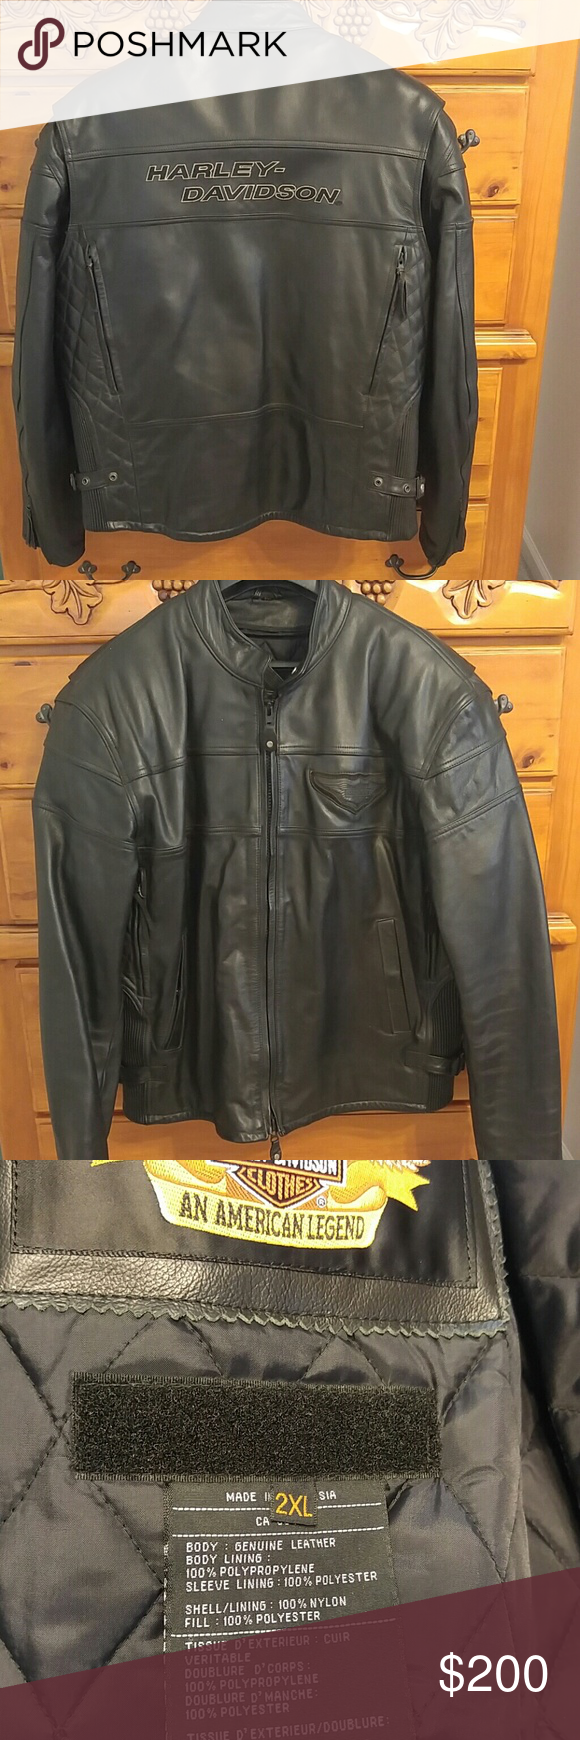 Men's Harley Davidson leather winter jacket Excellent